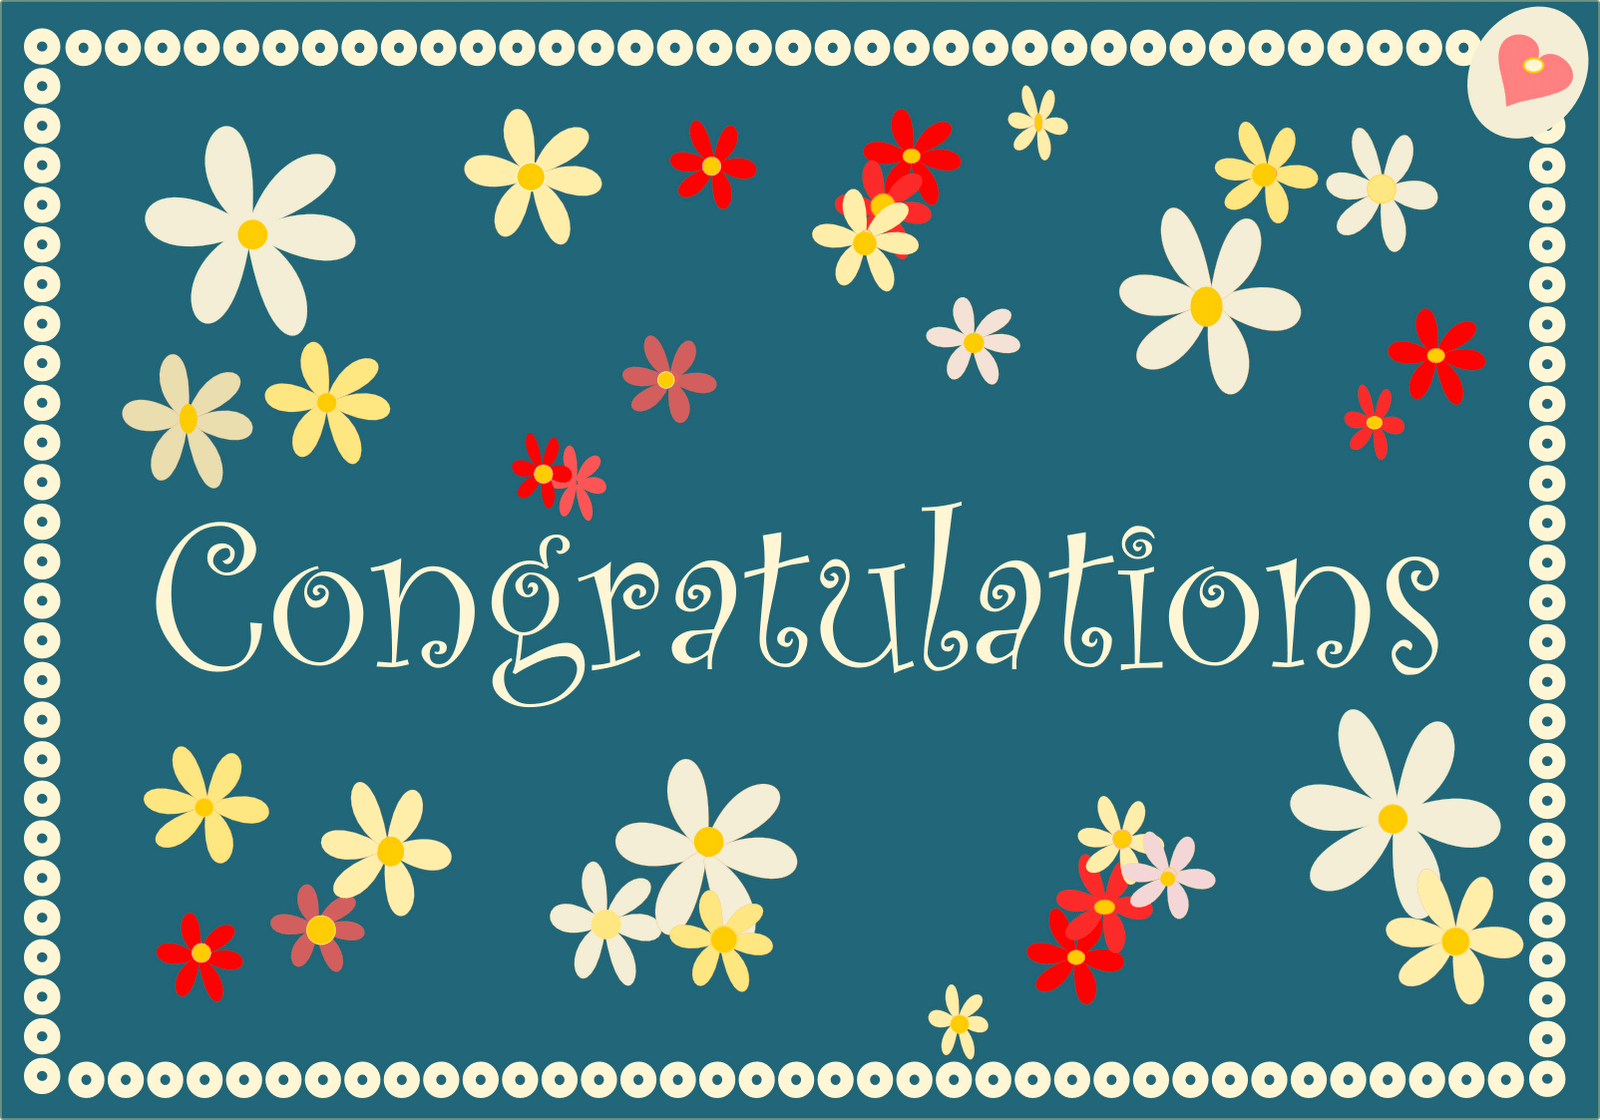 Congratulations greetings card m4hsunfo